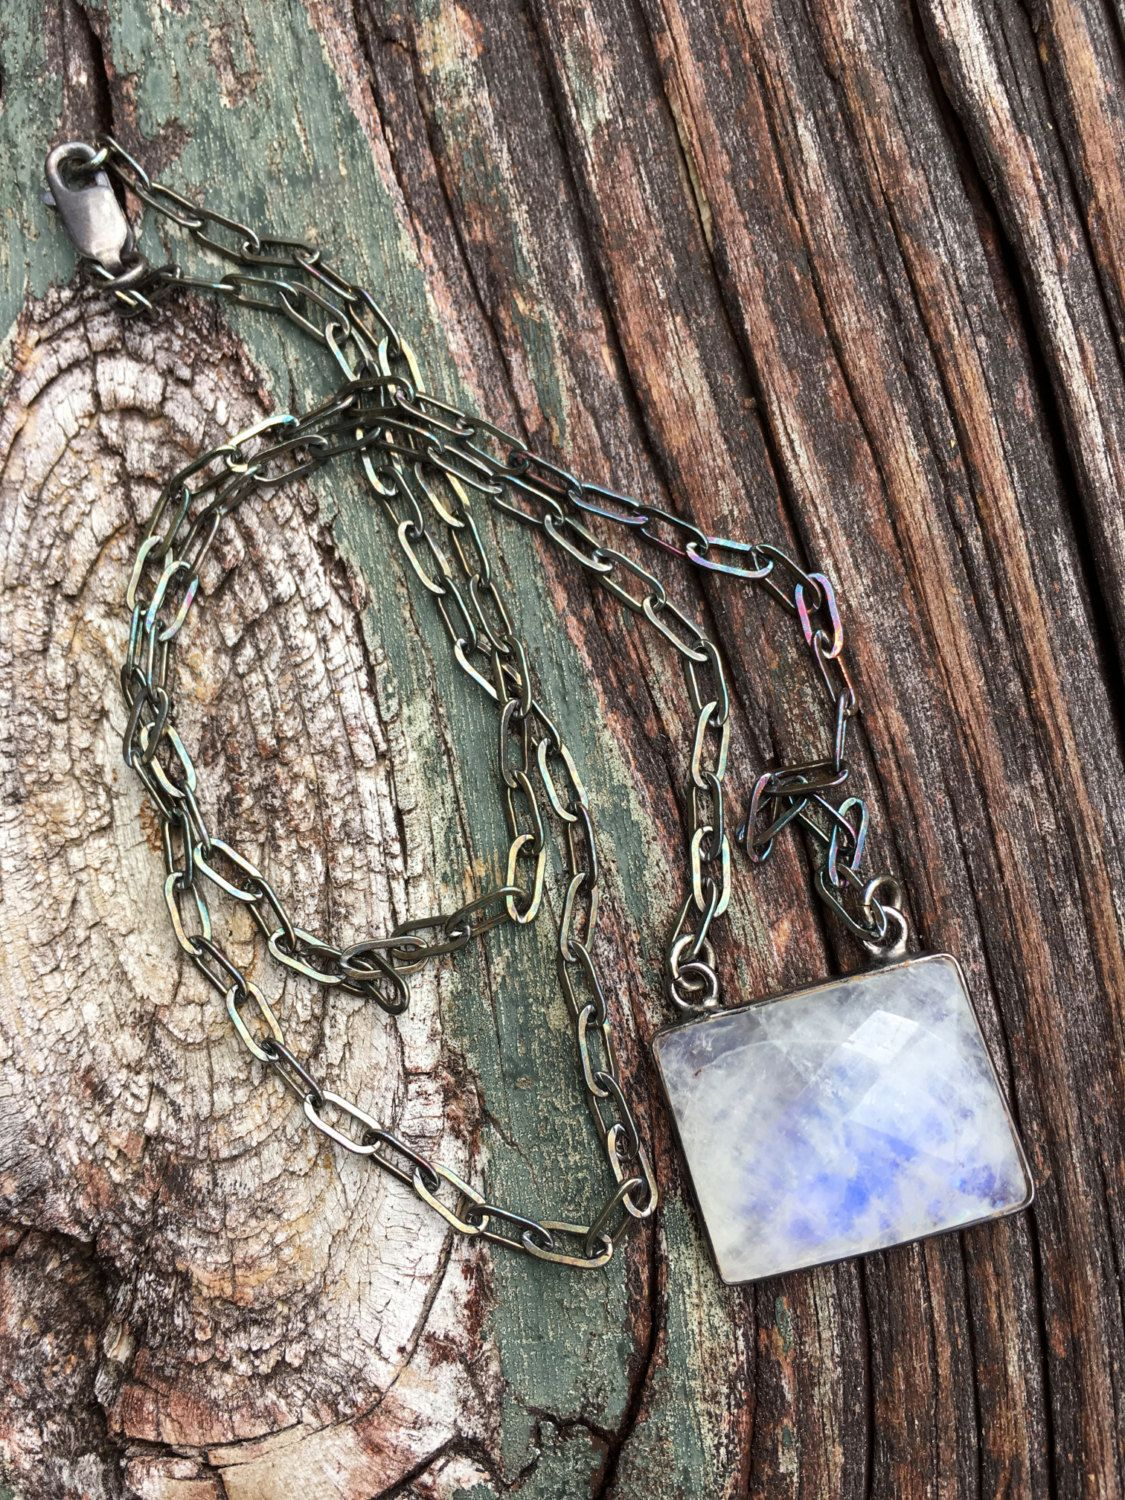 Bohemian Oxidized Sterling Necklace Moonstone Pendant by SeeJanesBeads by SeeJanesBeads on Etsy